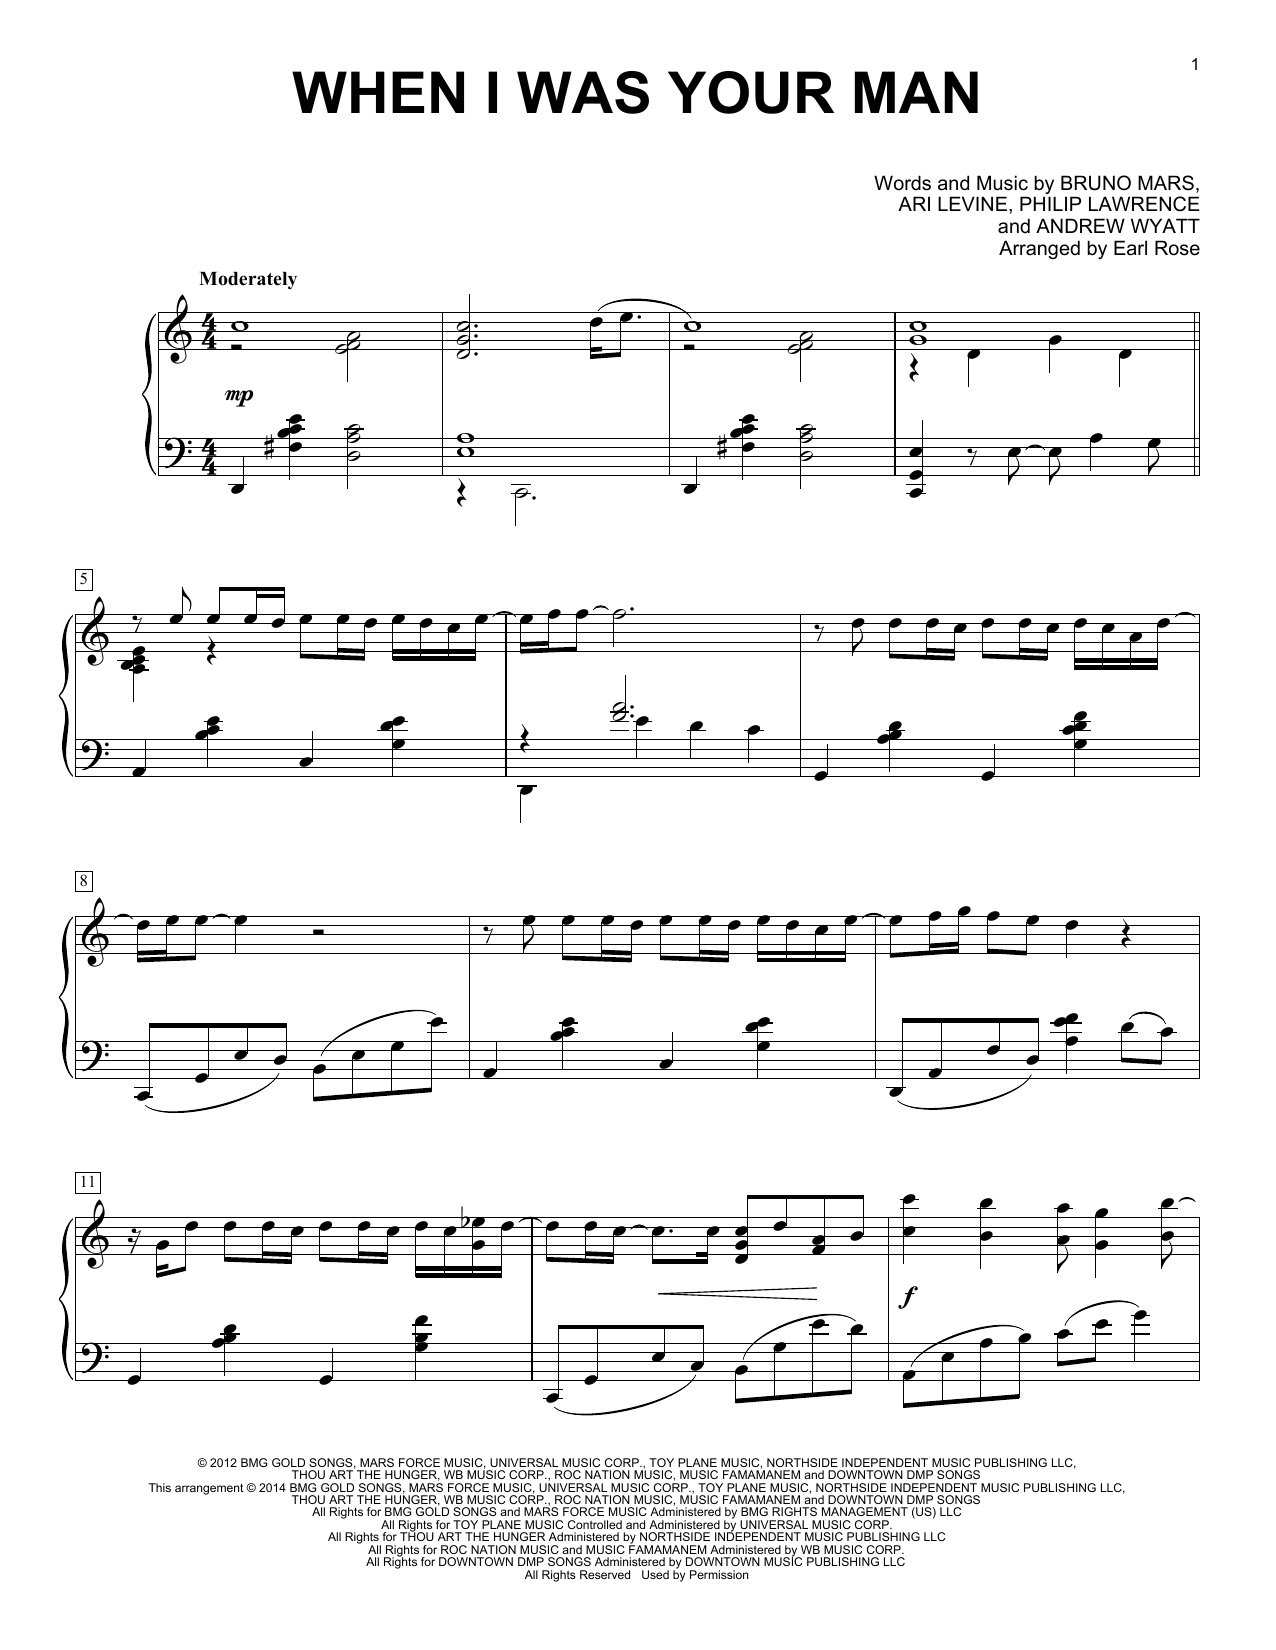 When I Was Your Man Chords Earl Rose When I Was Your Man Sheet Music Notes Chords Download Printable Piano Solo Sku 156797